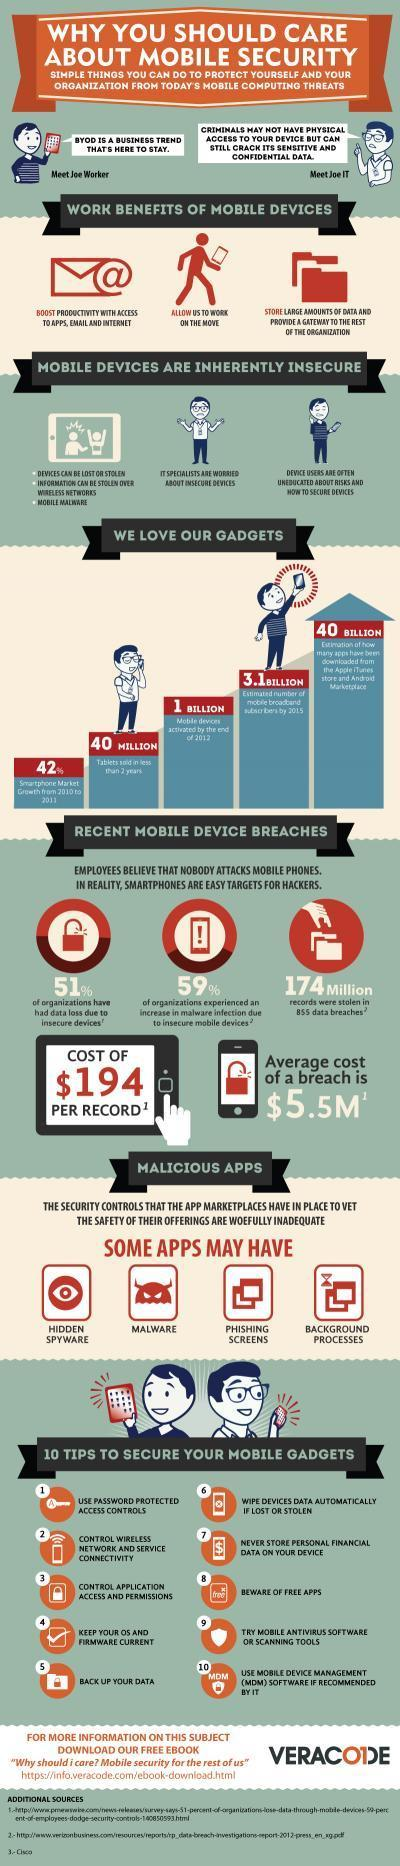 Why You Should Care About Mobile Security [Infographic] | ciberpocket | Scoop.it